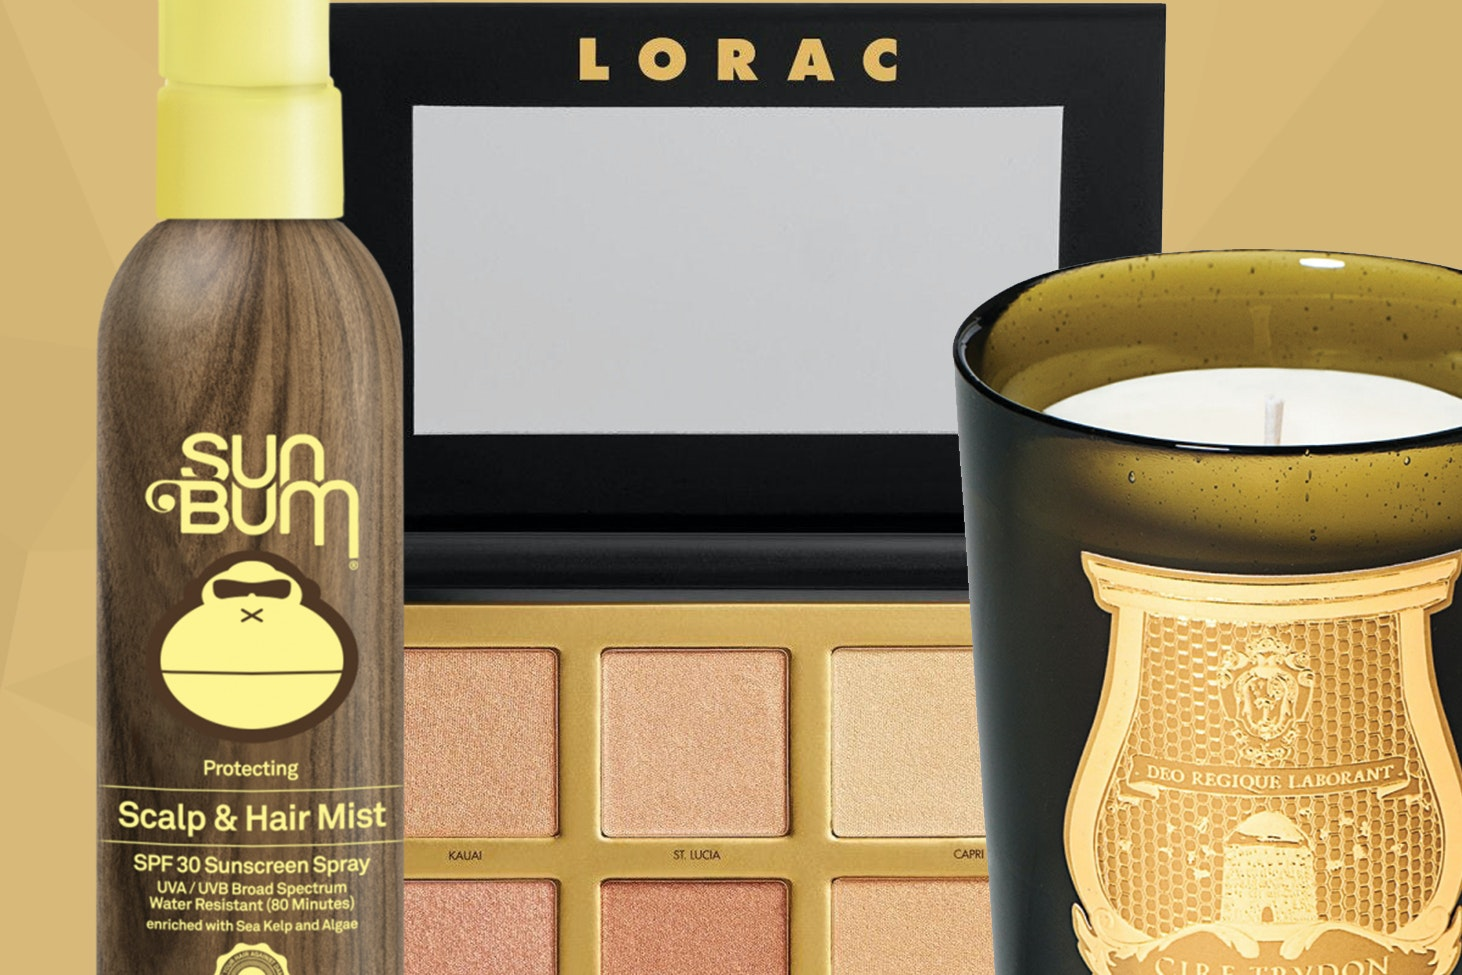 12 New Products That You'll Want In Your Beauty Arsenal This June